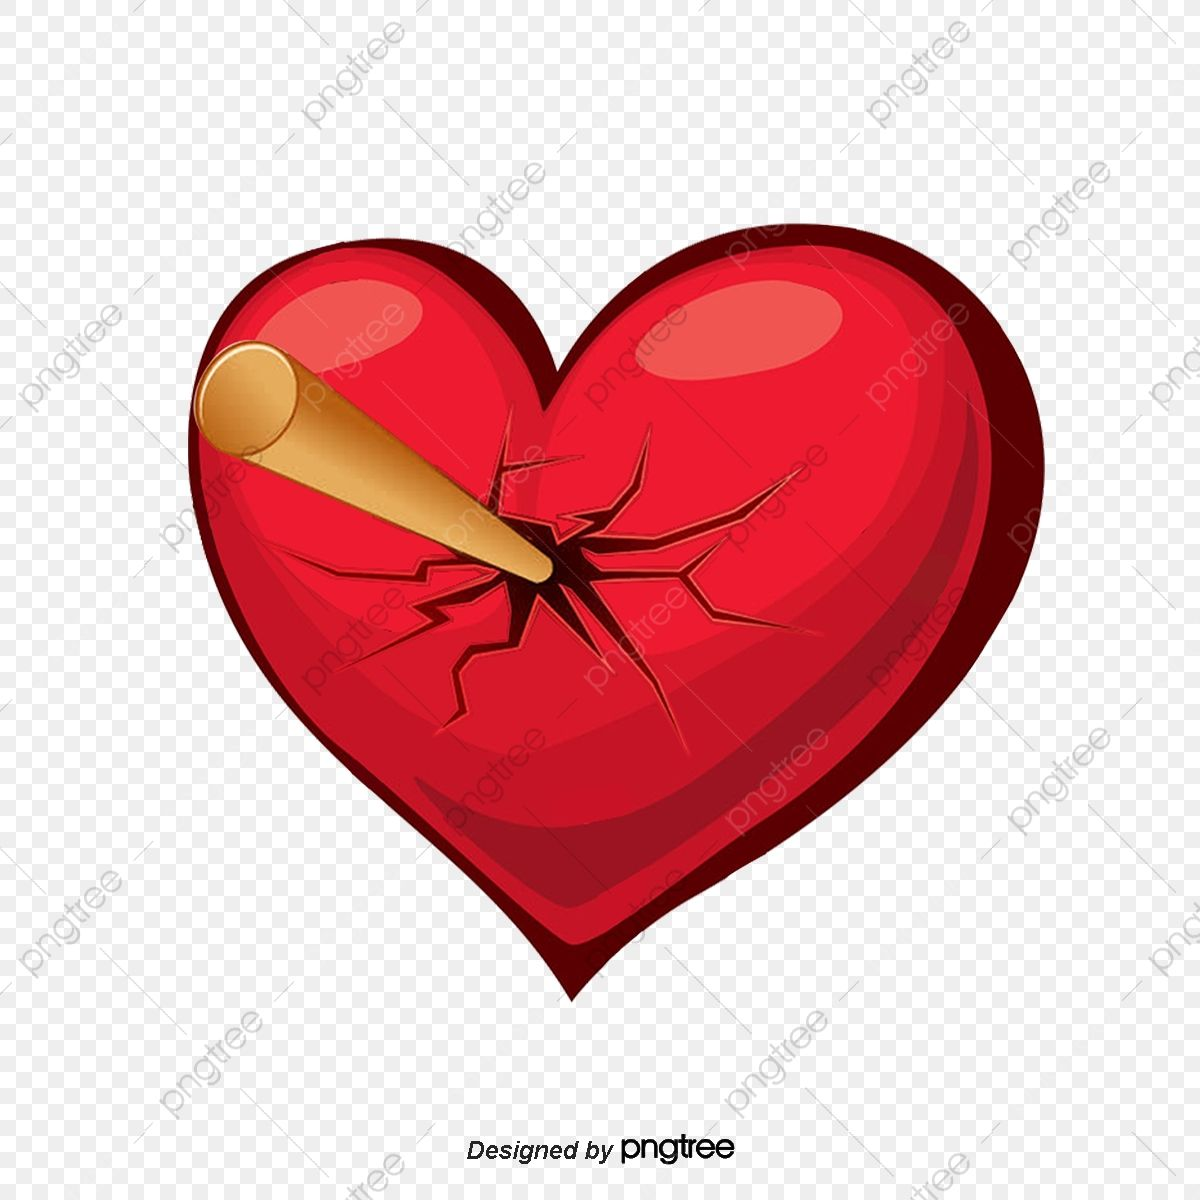 Vector Red Broken Heart Sword Heartbreak Wound Png Transparent Clipart Image And Psd File For Free Download Heart Hands Drawing Broken Heart Pictures Love Heart Illustration